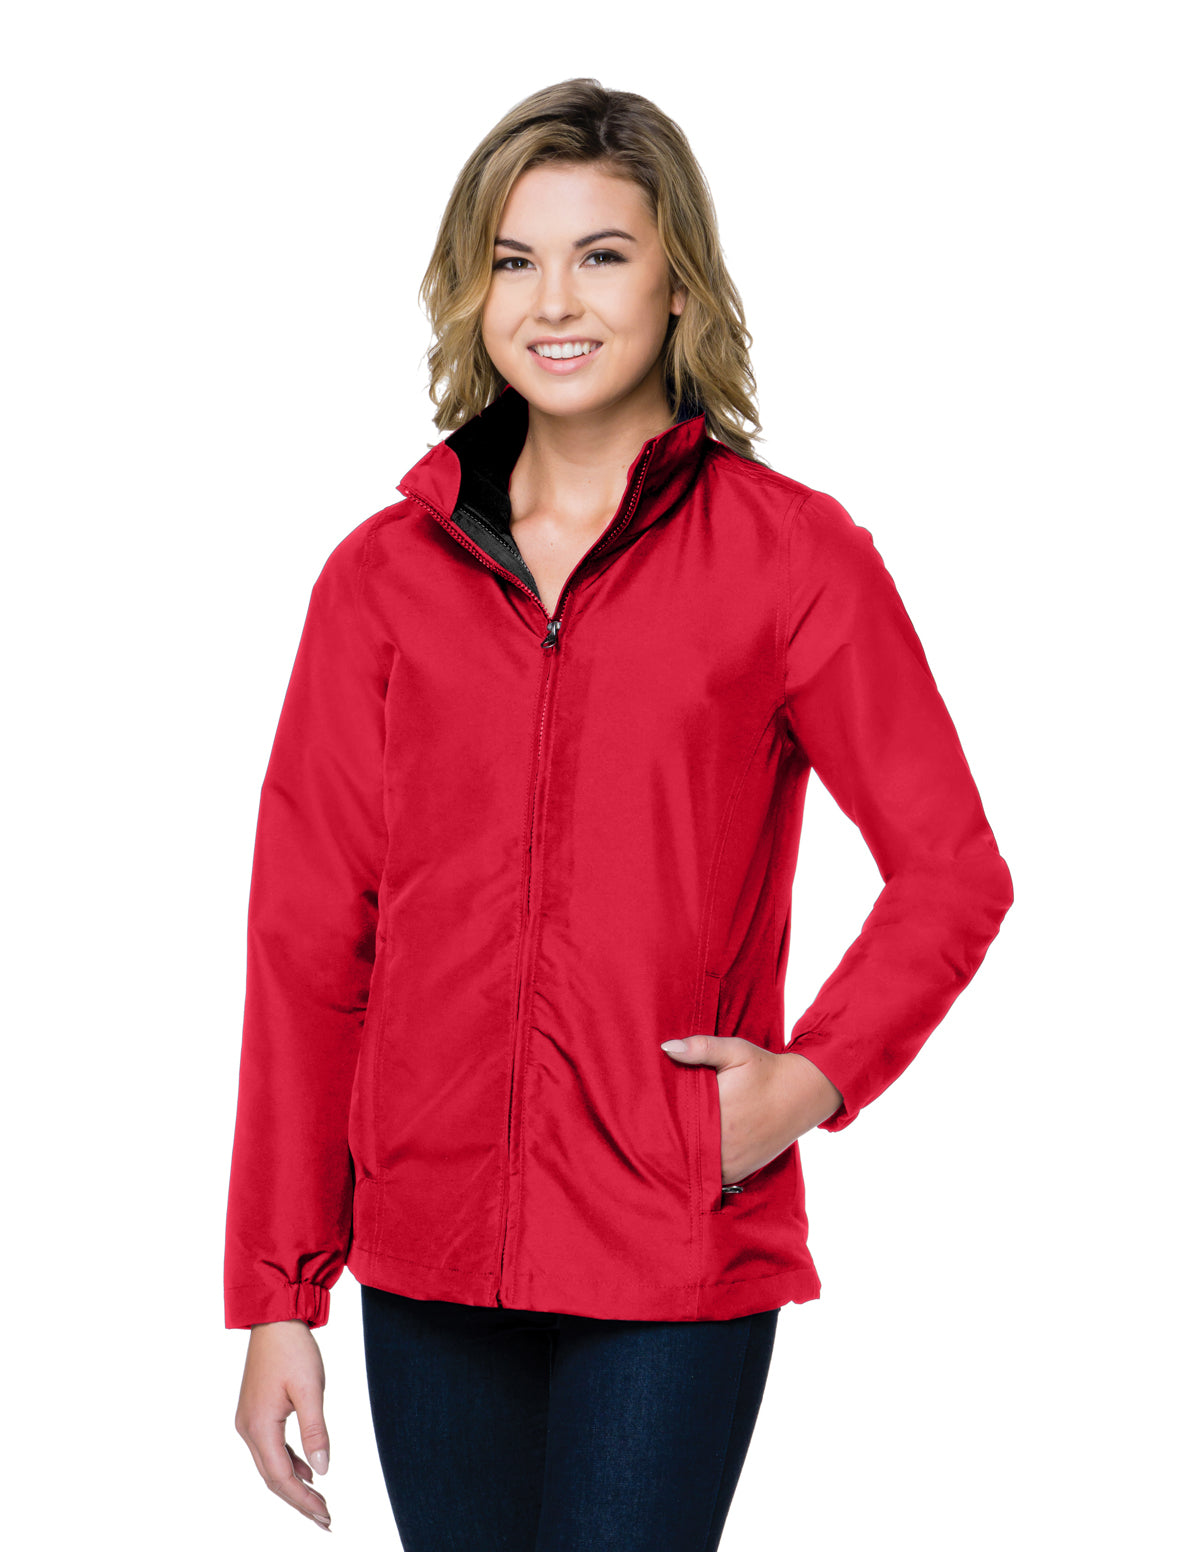 Hallowell-Womens 3-In-1 Jacket Features A Shell Constructed Of Windproof/Water-Resistant Polyester